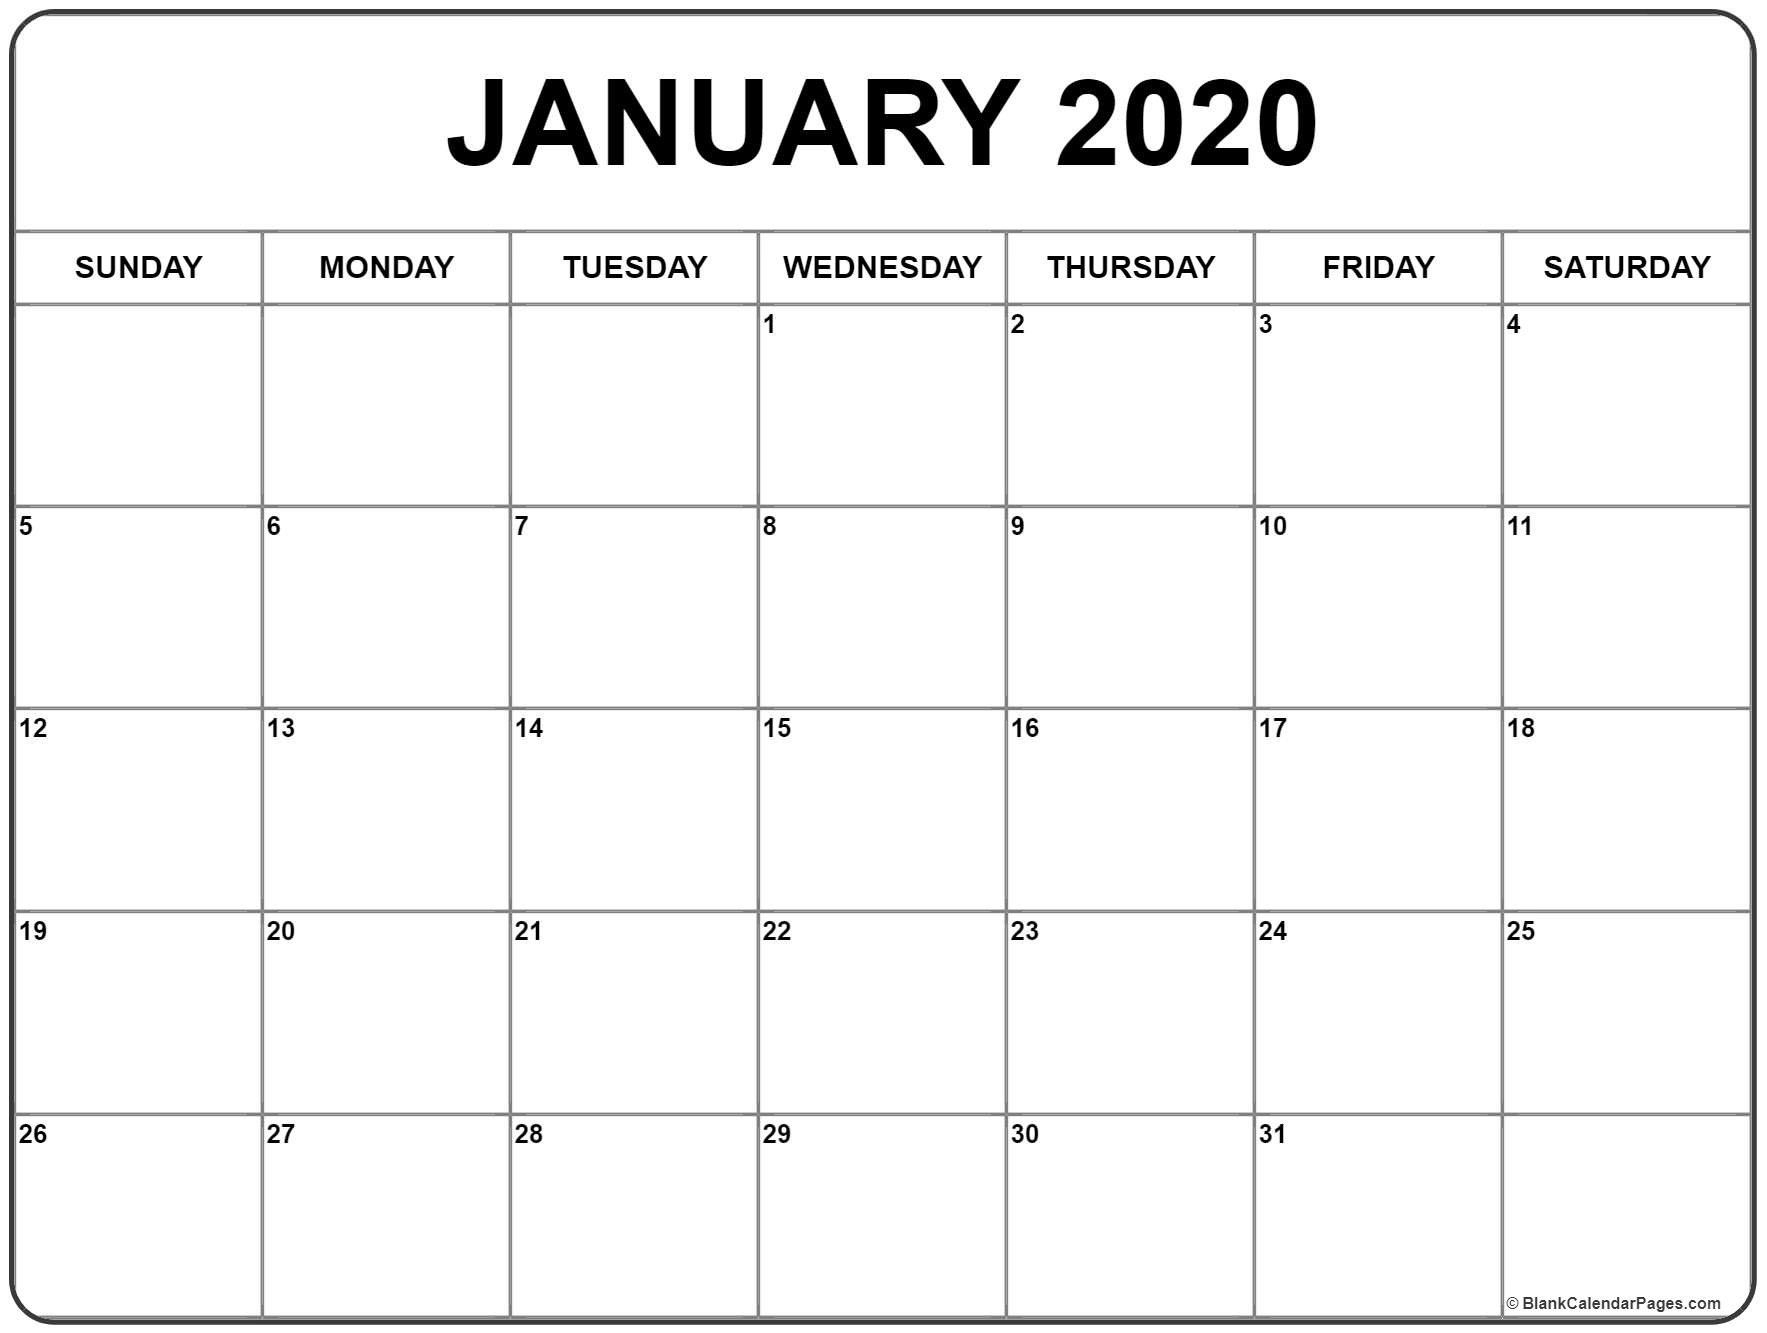 January 2020 Calendar 56 Templates Of 2020 Printable January pertaining to 2020 Calendar Printable Free Pdf Color